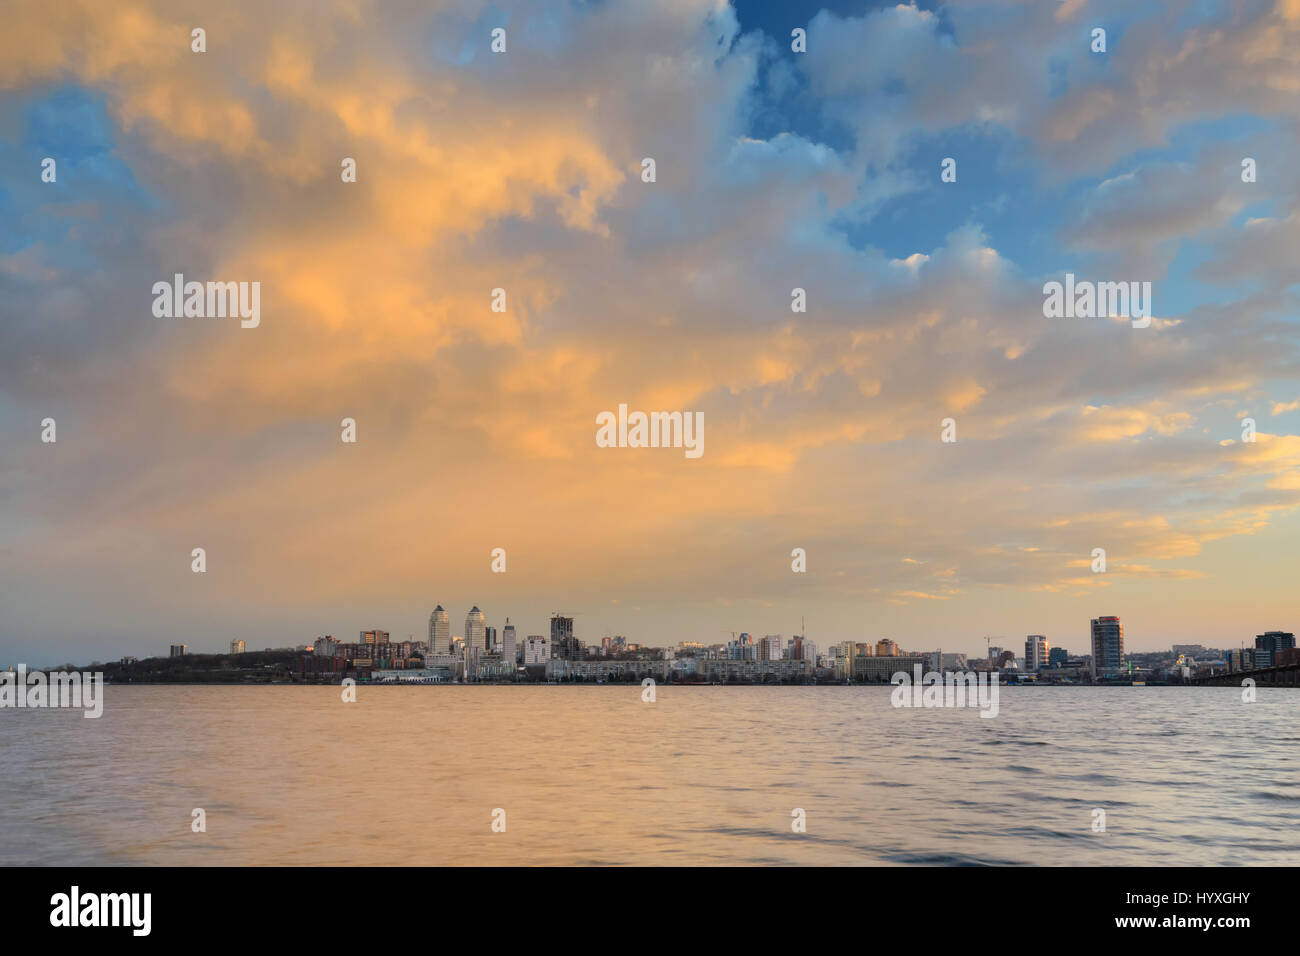 Majestic colorful sunset after storm in the Dnipropetrovsk. Ukraine - Stock Image